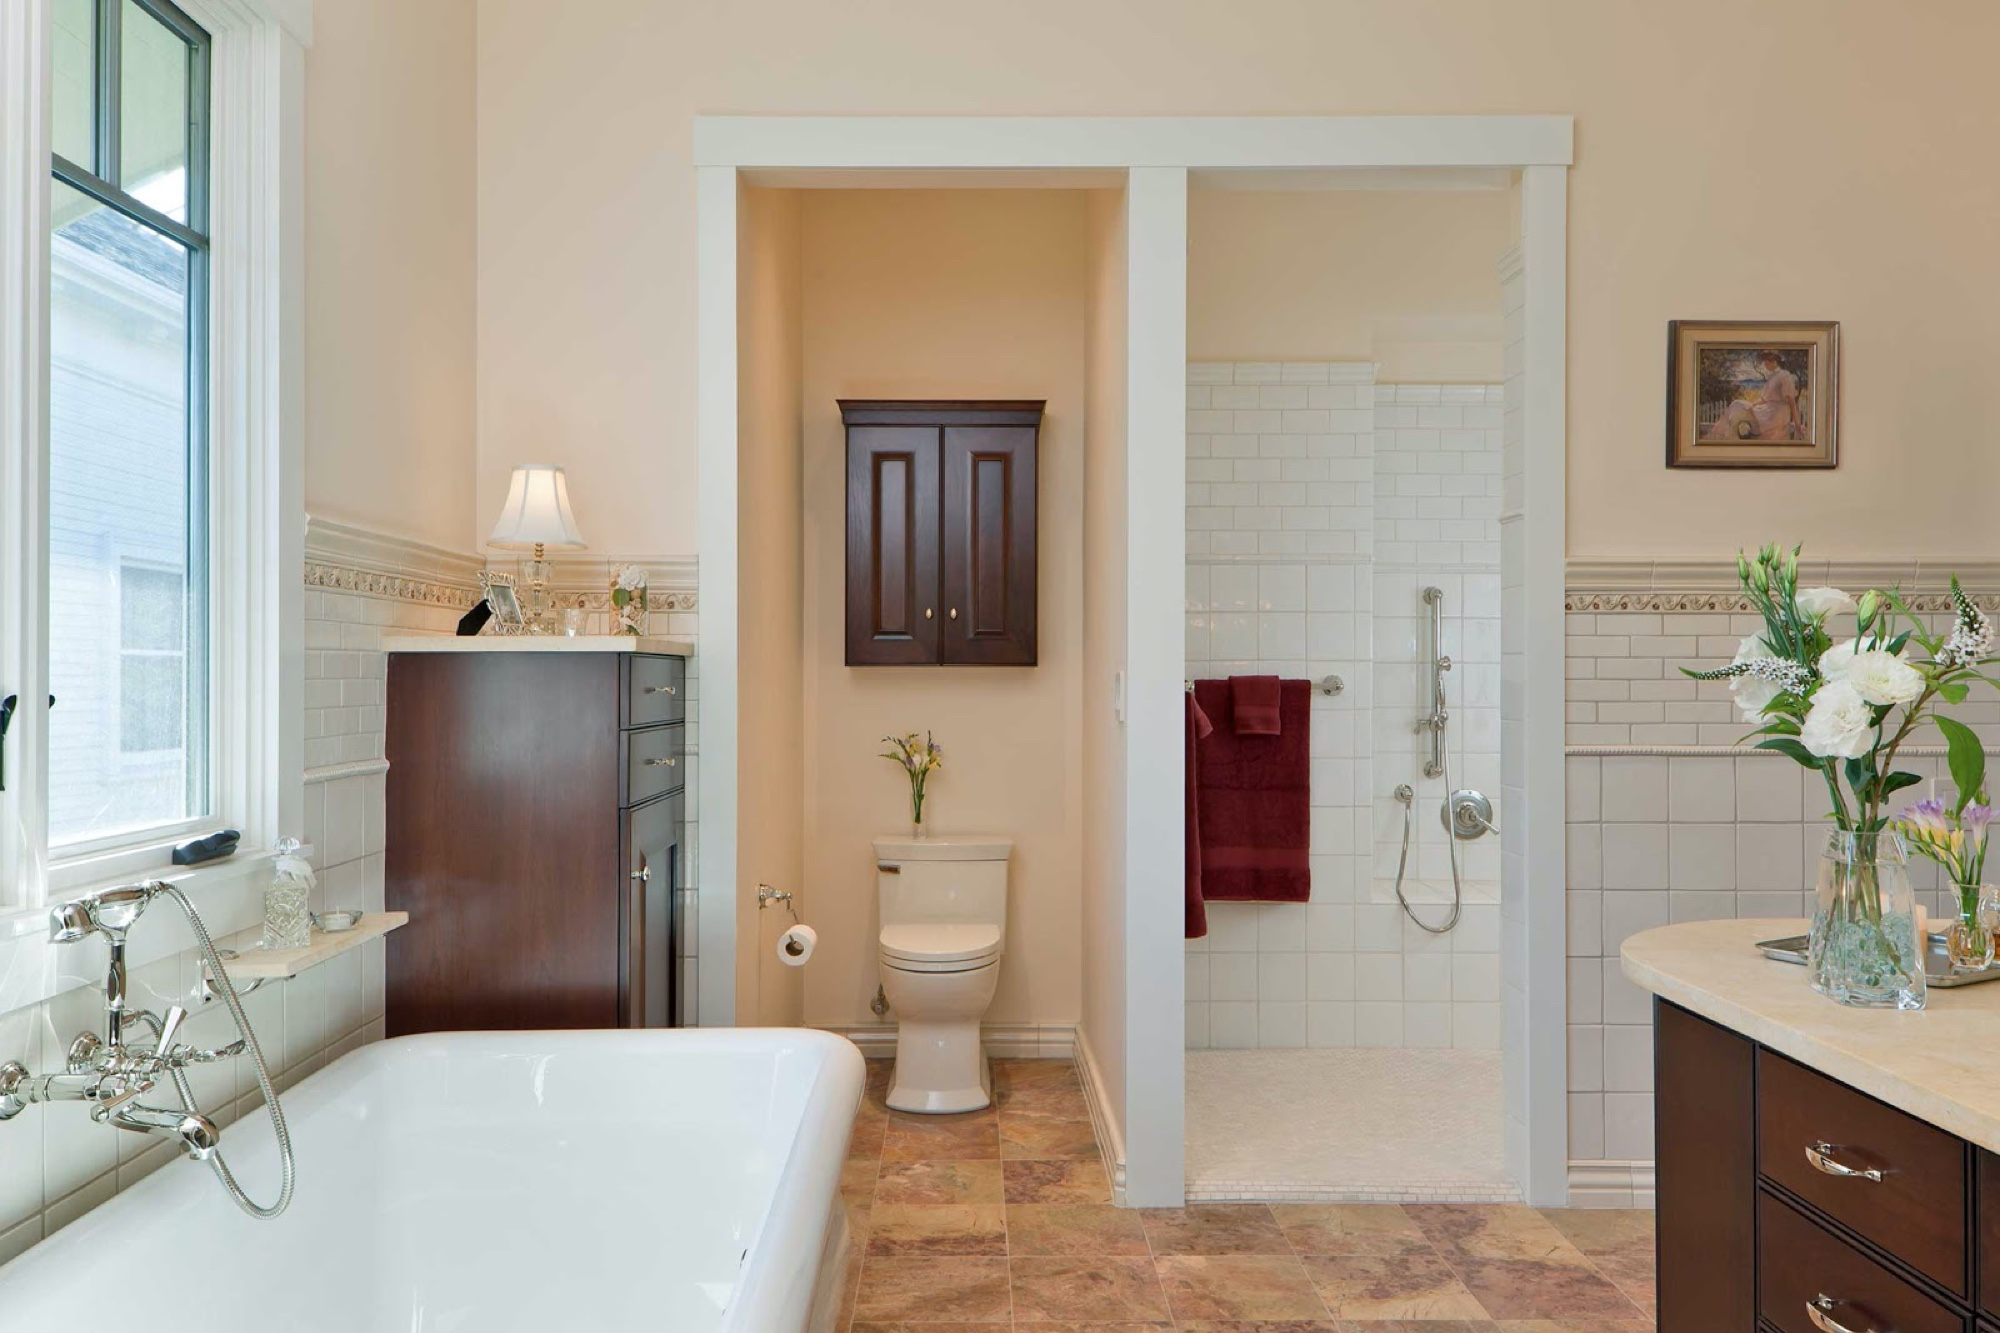 Luxury Bathroom Remodels in the East Bay - Rectangular Wall Tile - Master Bathroom - Custom Kitchens